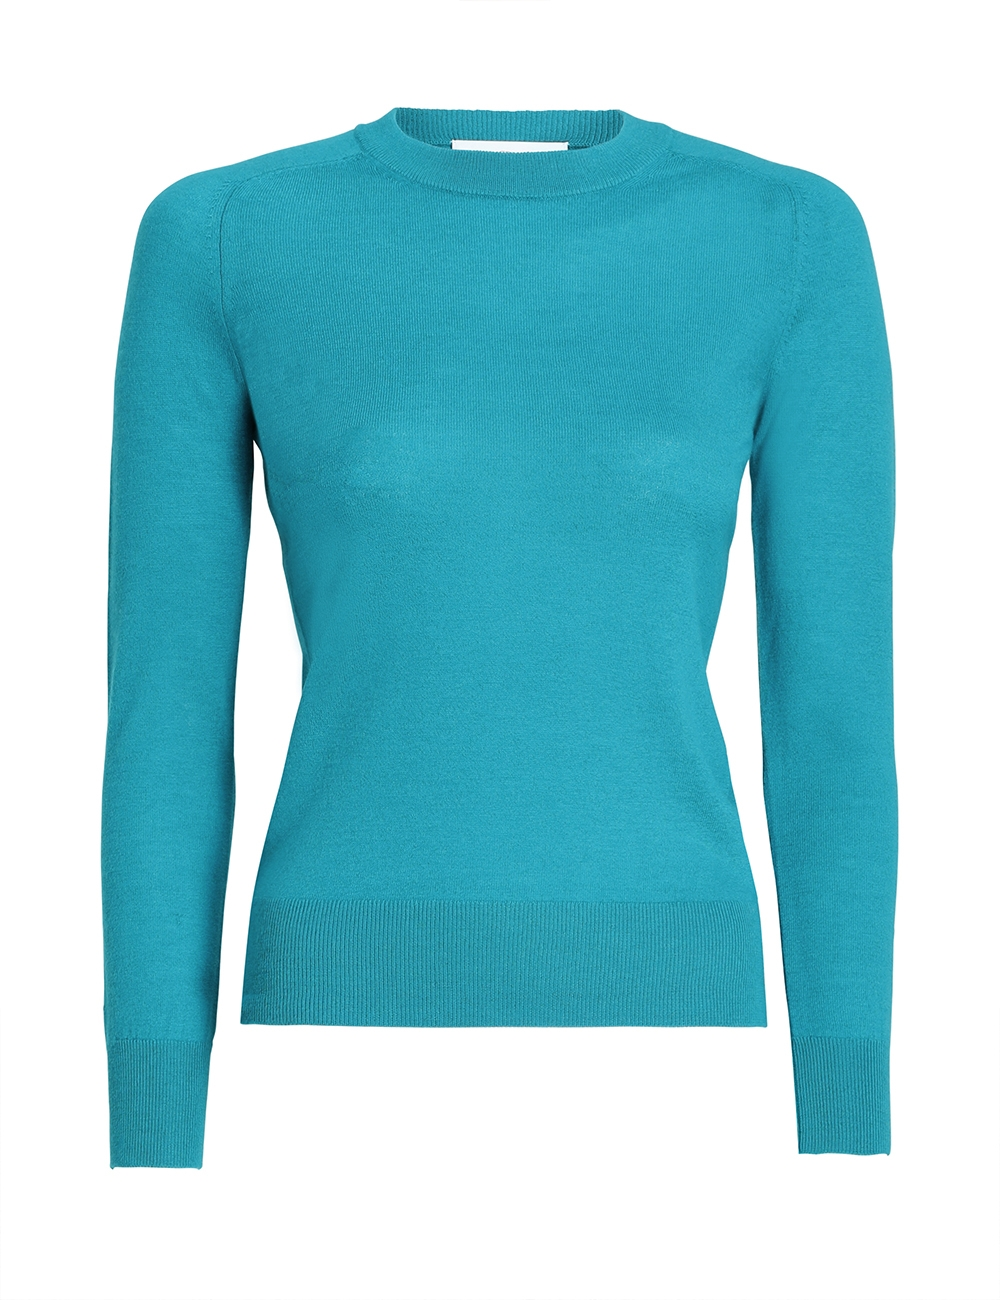 Saddle Shoulder Sweater